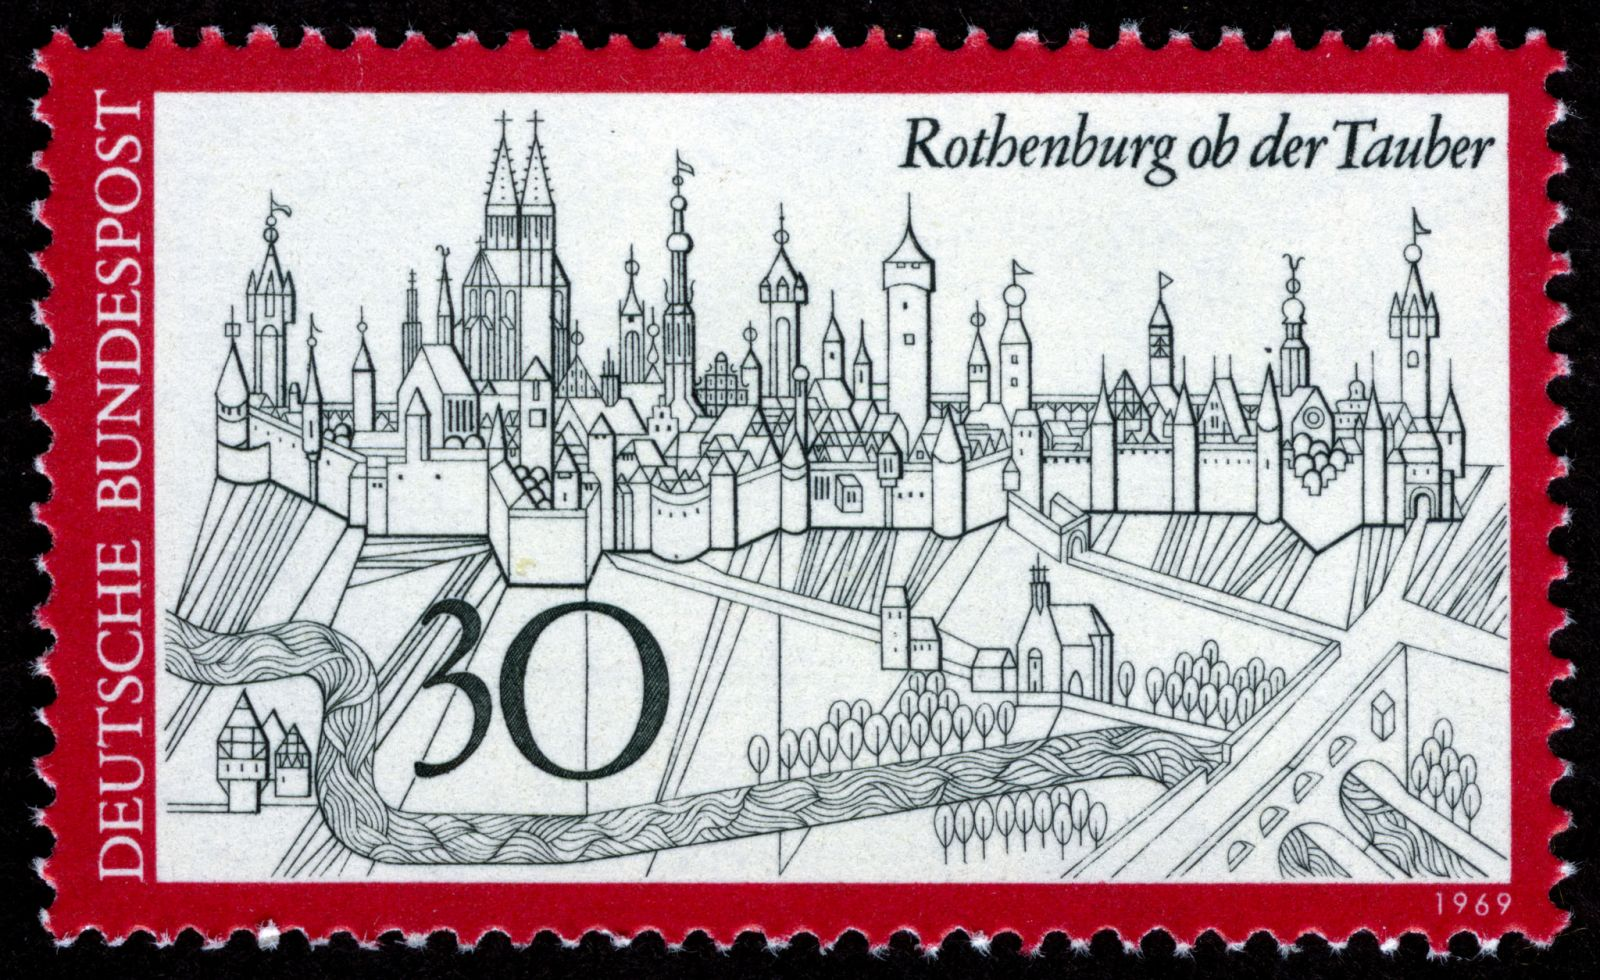 Rothenburg ob der Tauber, 1969